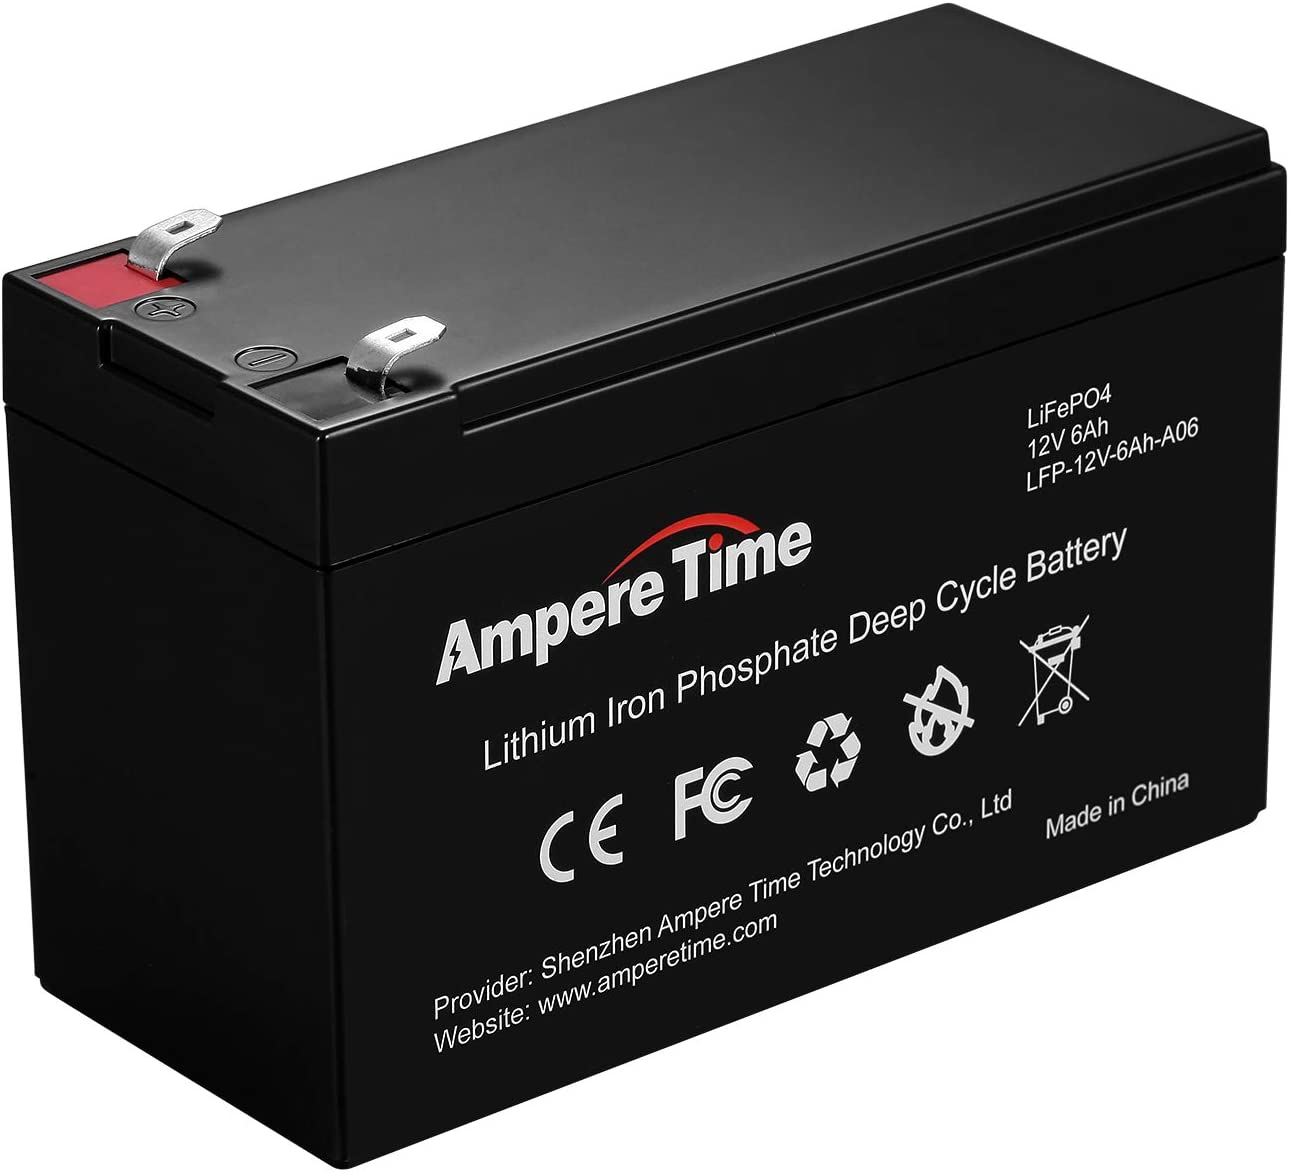 Ampere Time 12v 6ah Lithium Iron Phosphate Battery Rechargeable Lifepo4 Battery Low Self Discharge And Light Weight Provide 3 Years Warranty Auto